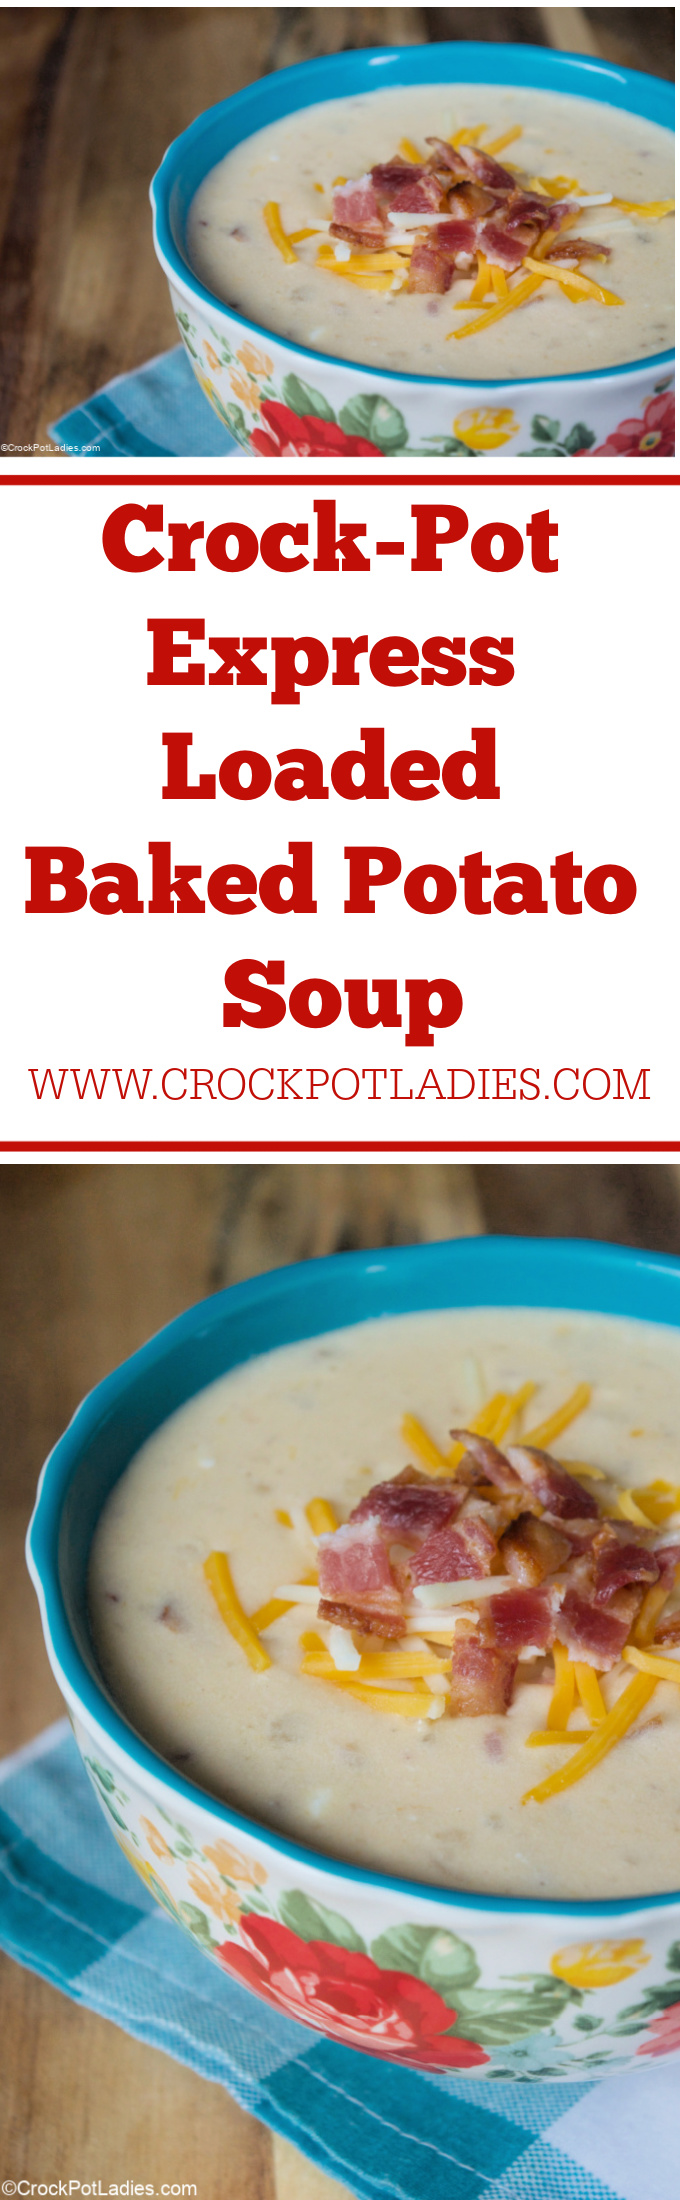 Crock-Pot Express Loaded Baked Potato Soup